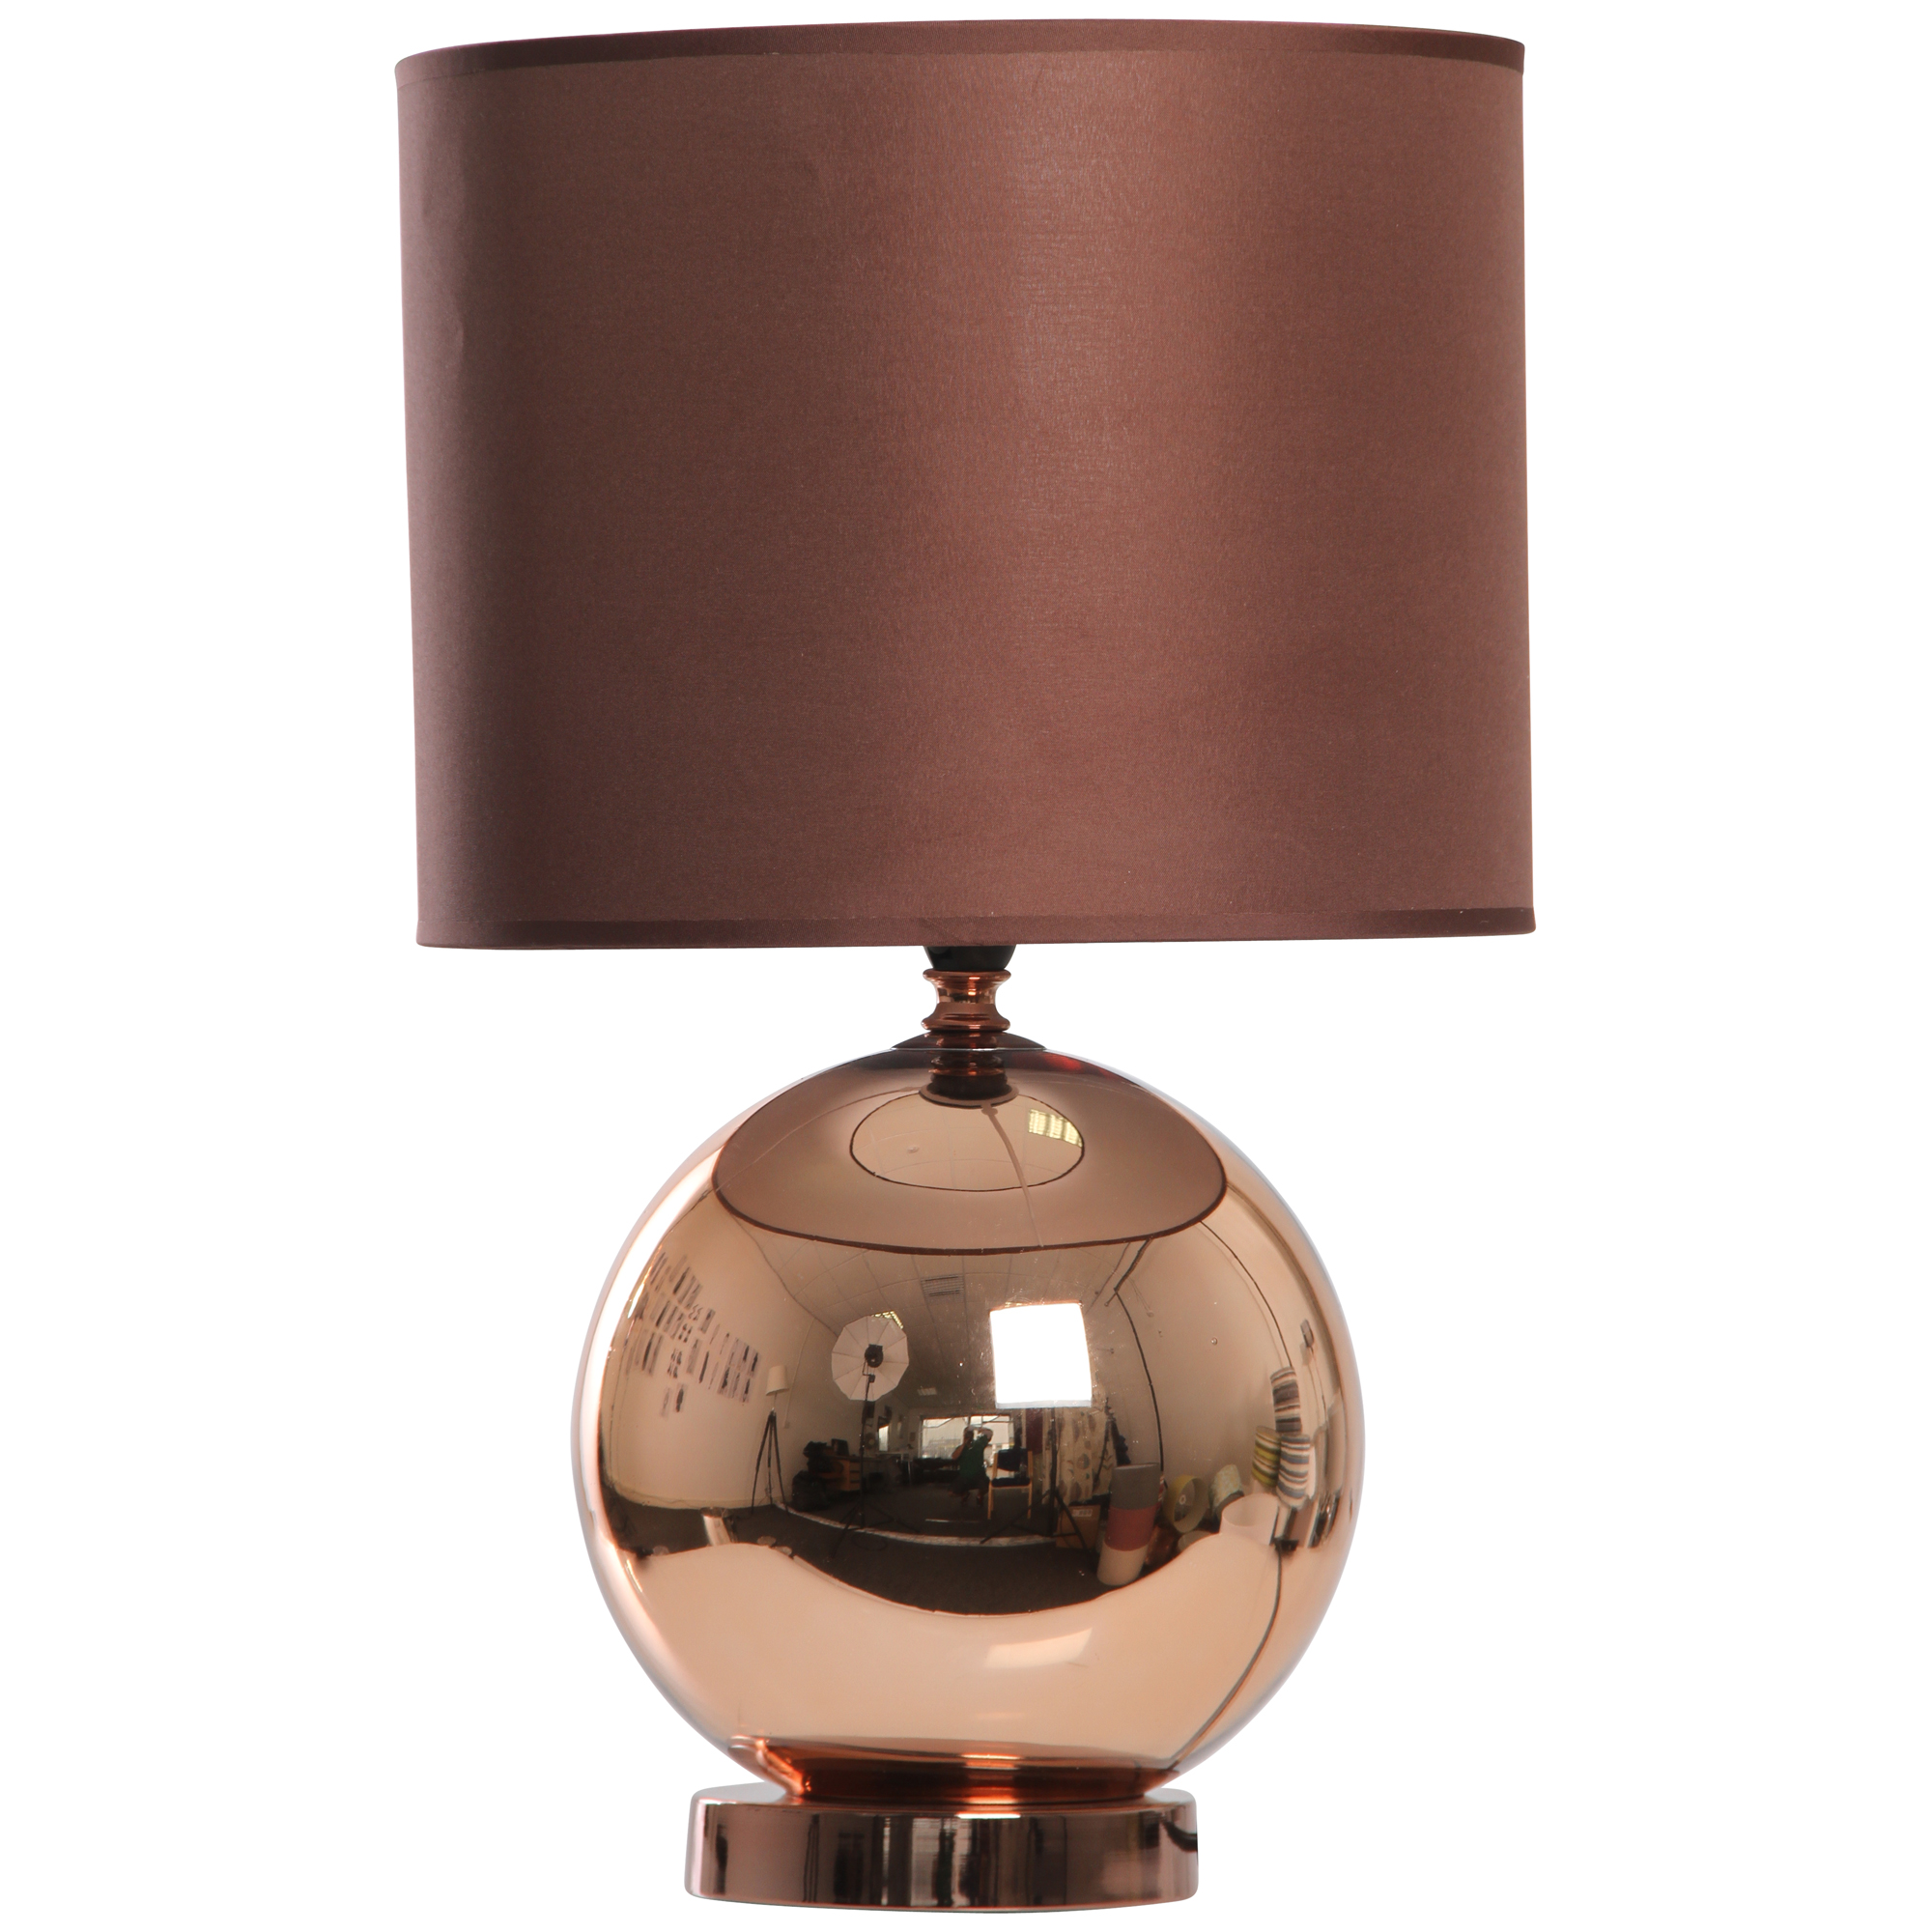 KLIVING OSTEND COPPER TABLE LAMP WITH MATCHING CHOCOLATE